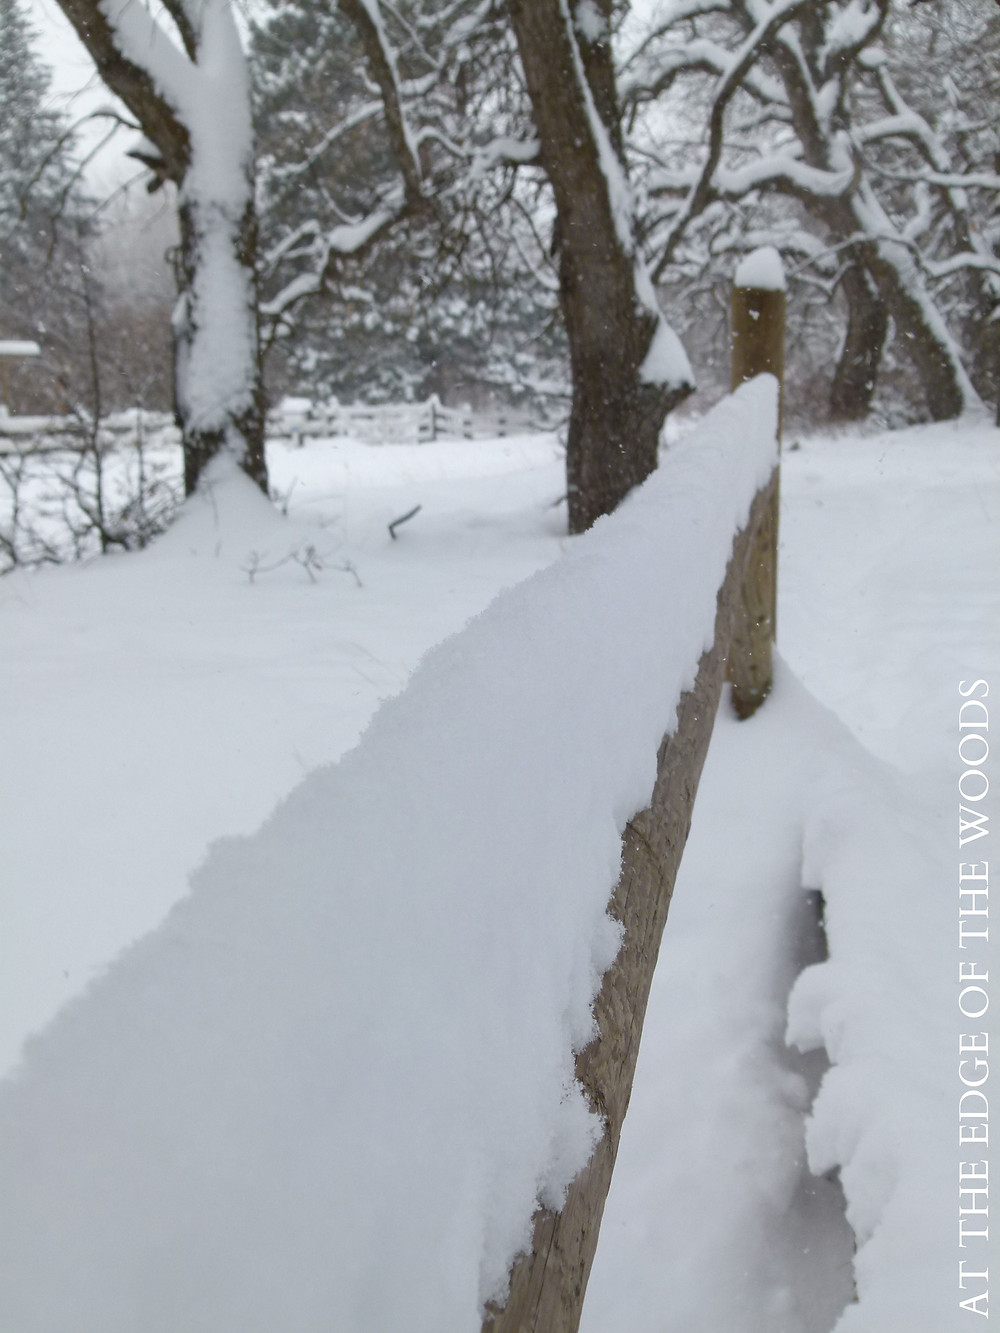 snow mounded on the fence railing